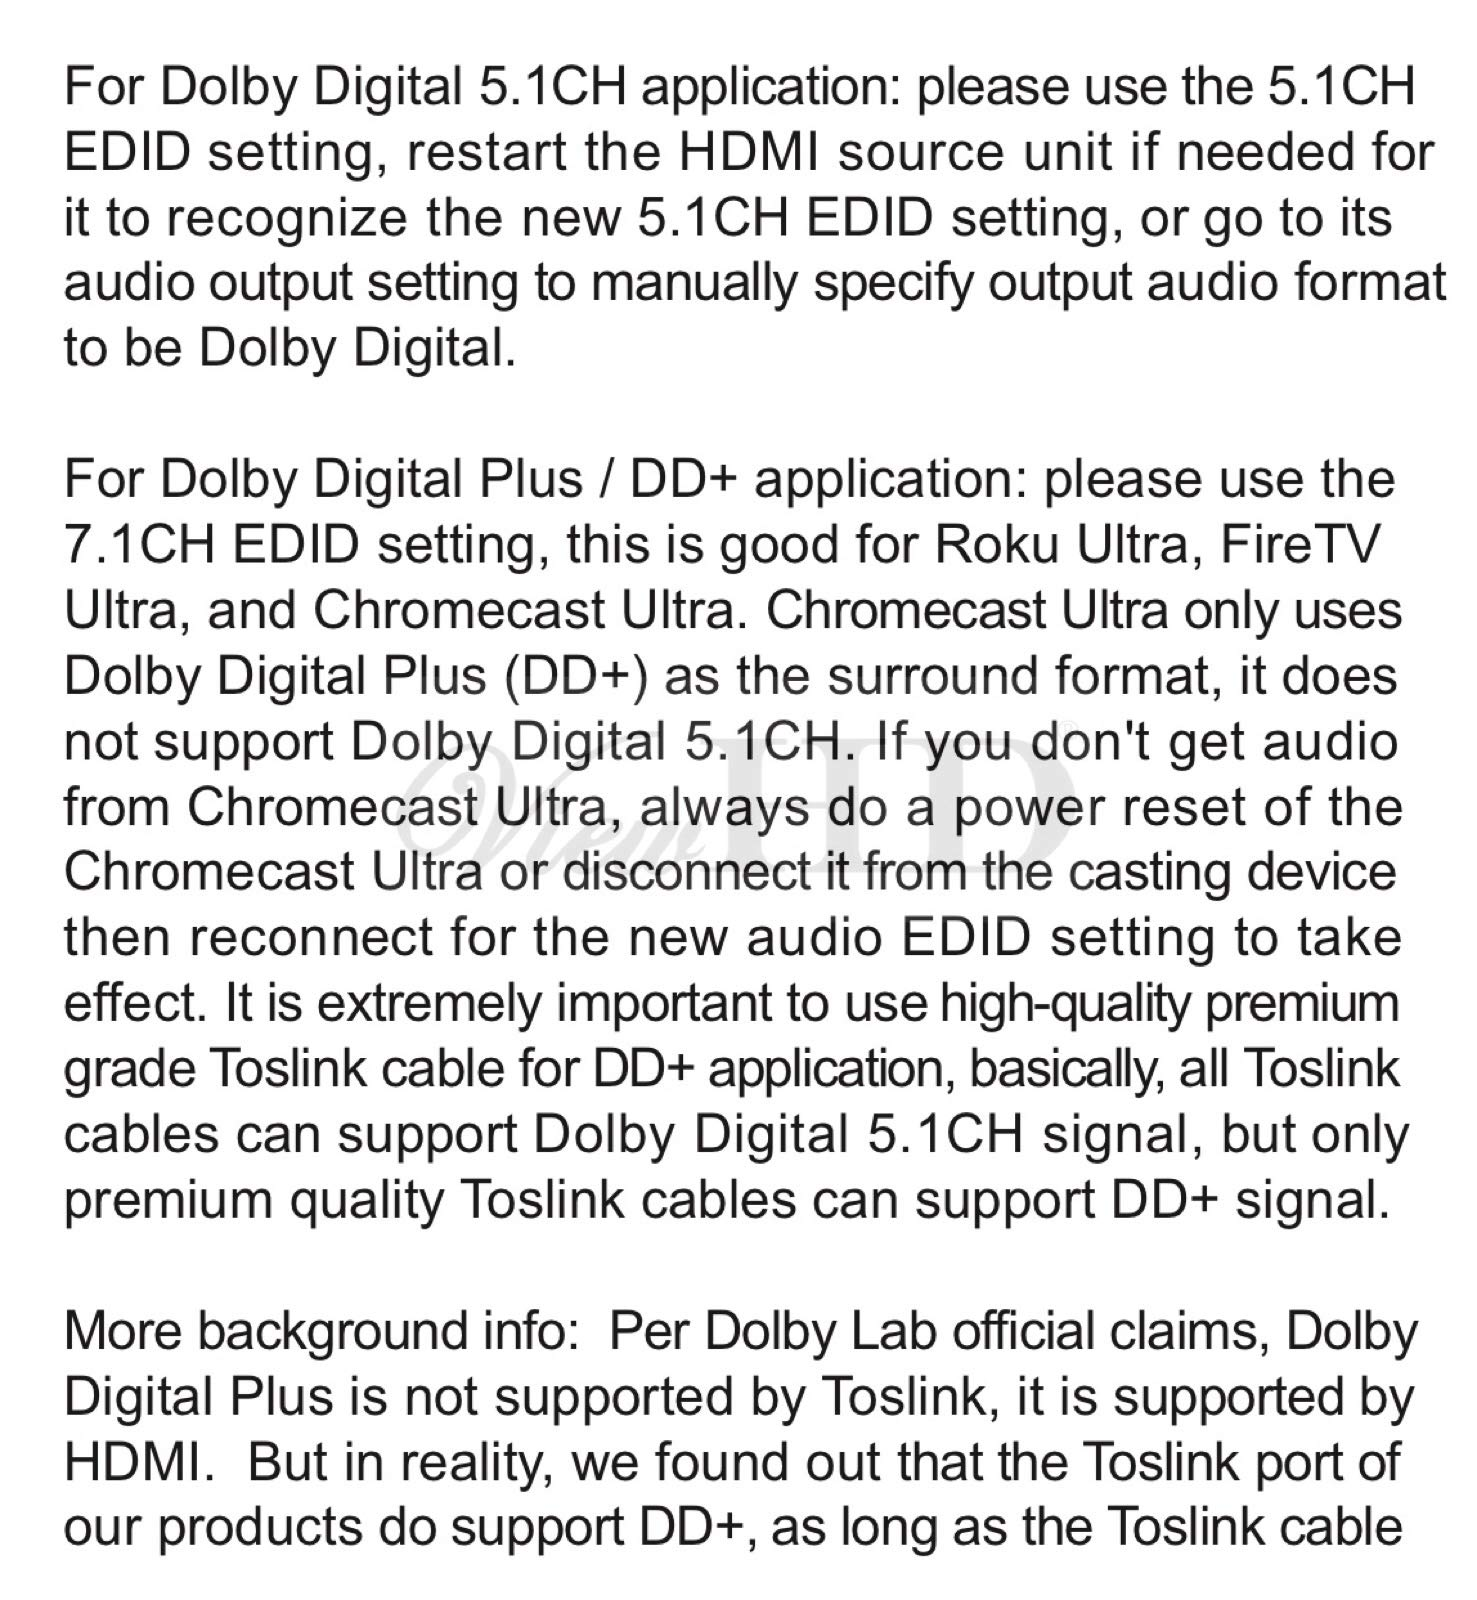 ViewHD UHD 18G HDMI Audio Extractor/Splitter Support HDMI v2.0 | HDCP v2.2 | 4K@60Hz | HDR | ARC | 3.5MM Analog Audio Output | Toslink Optical Audio Output | HDMI Audio Output | Model: VHD-UHAE2 by ViewHD (Image #7)